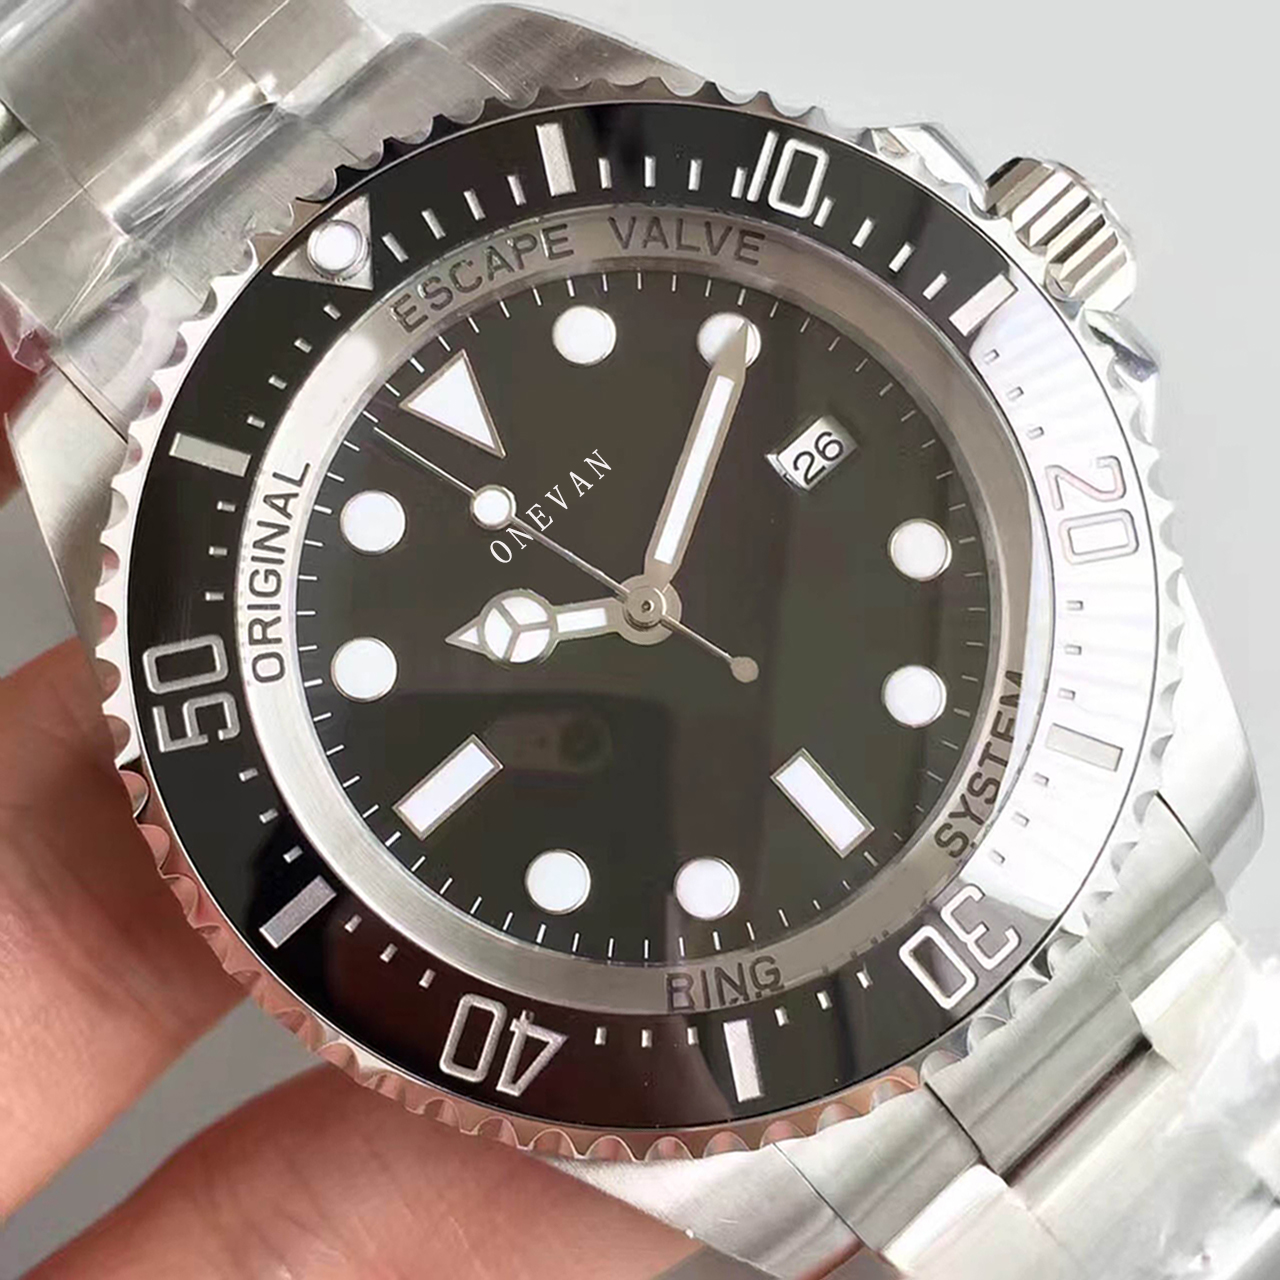 Top Black 44mm <font><b>Deep</b></font> Ceramic Bezel <font><b>SEA</b></font> Date Sapphire cystal Stainless Steel With Glide Lock Clasp Automatic Mechanical men <font><b>Watch</b></font> image